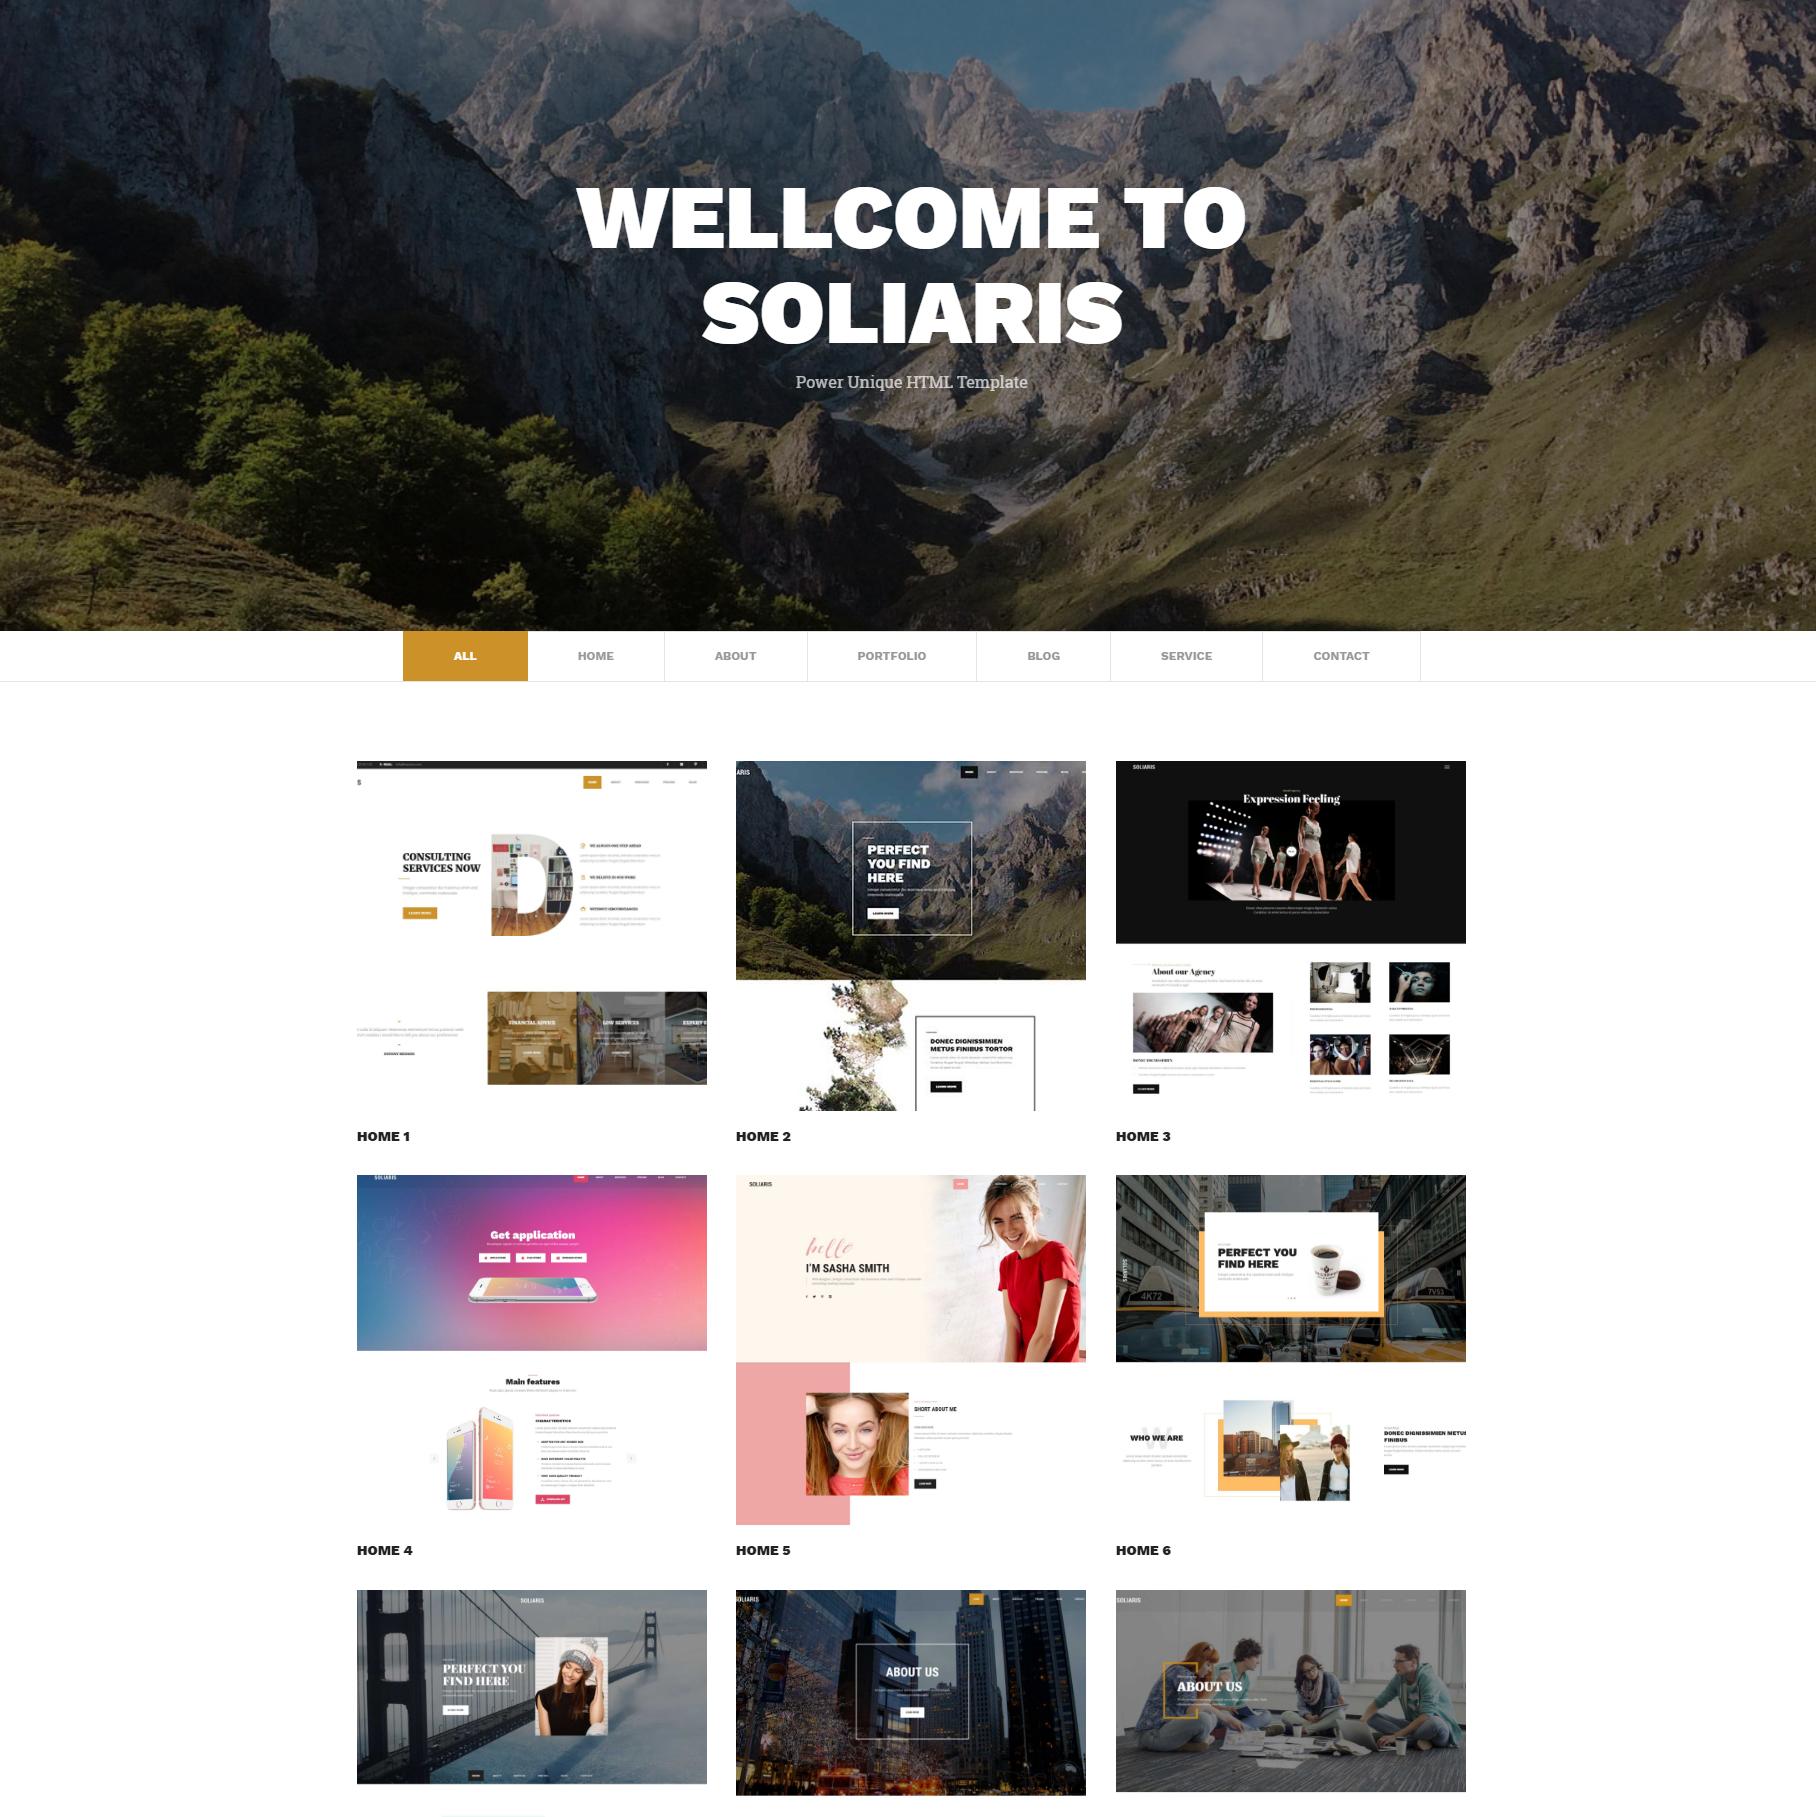 HTML5 Bootstrap Soliaris Templates